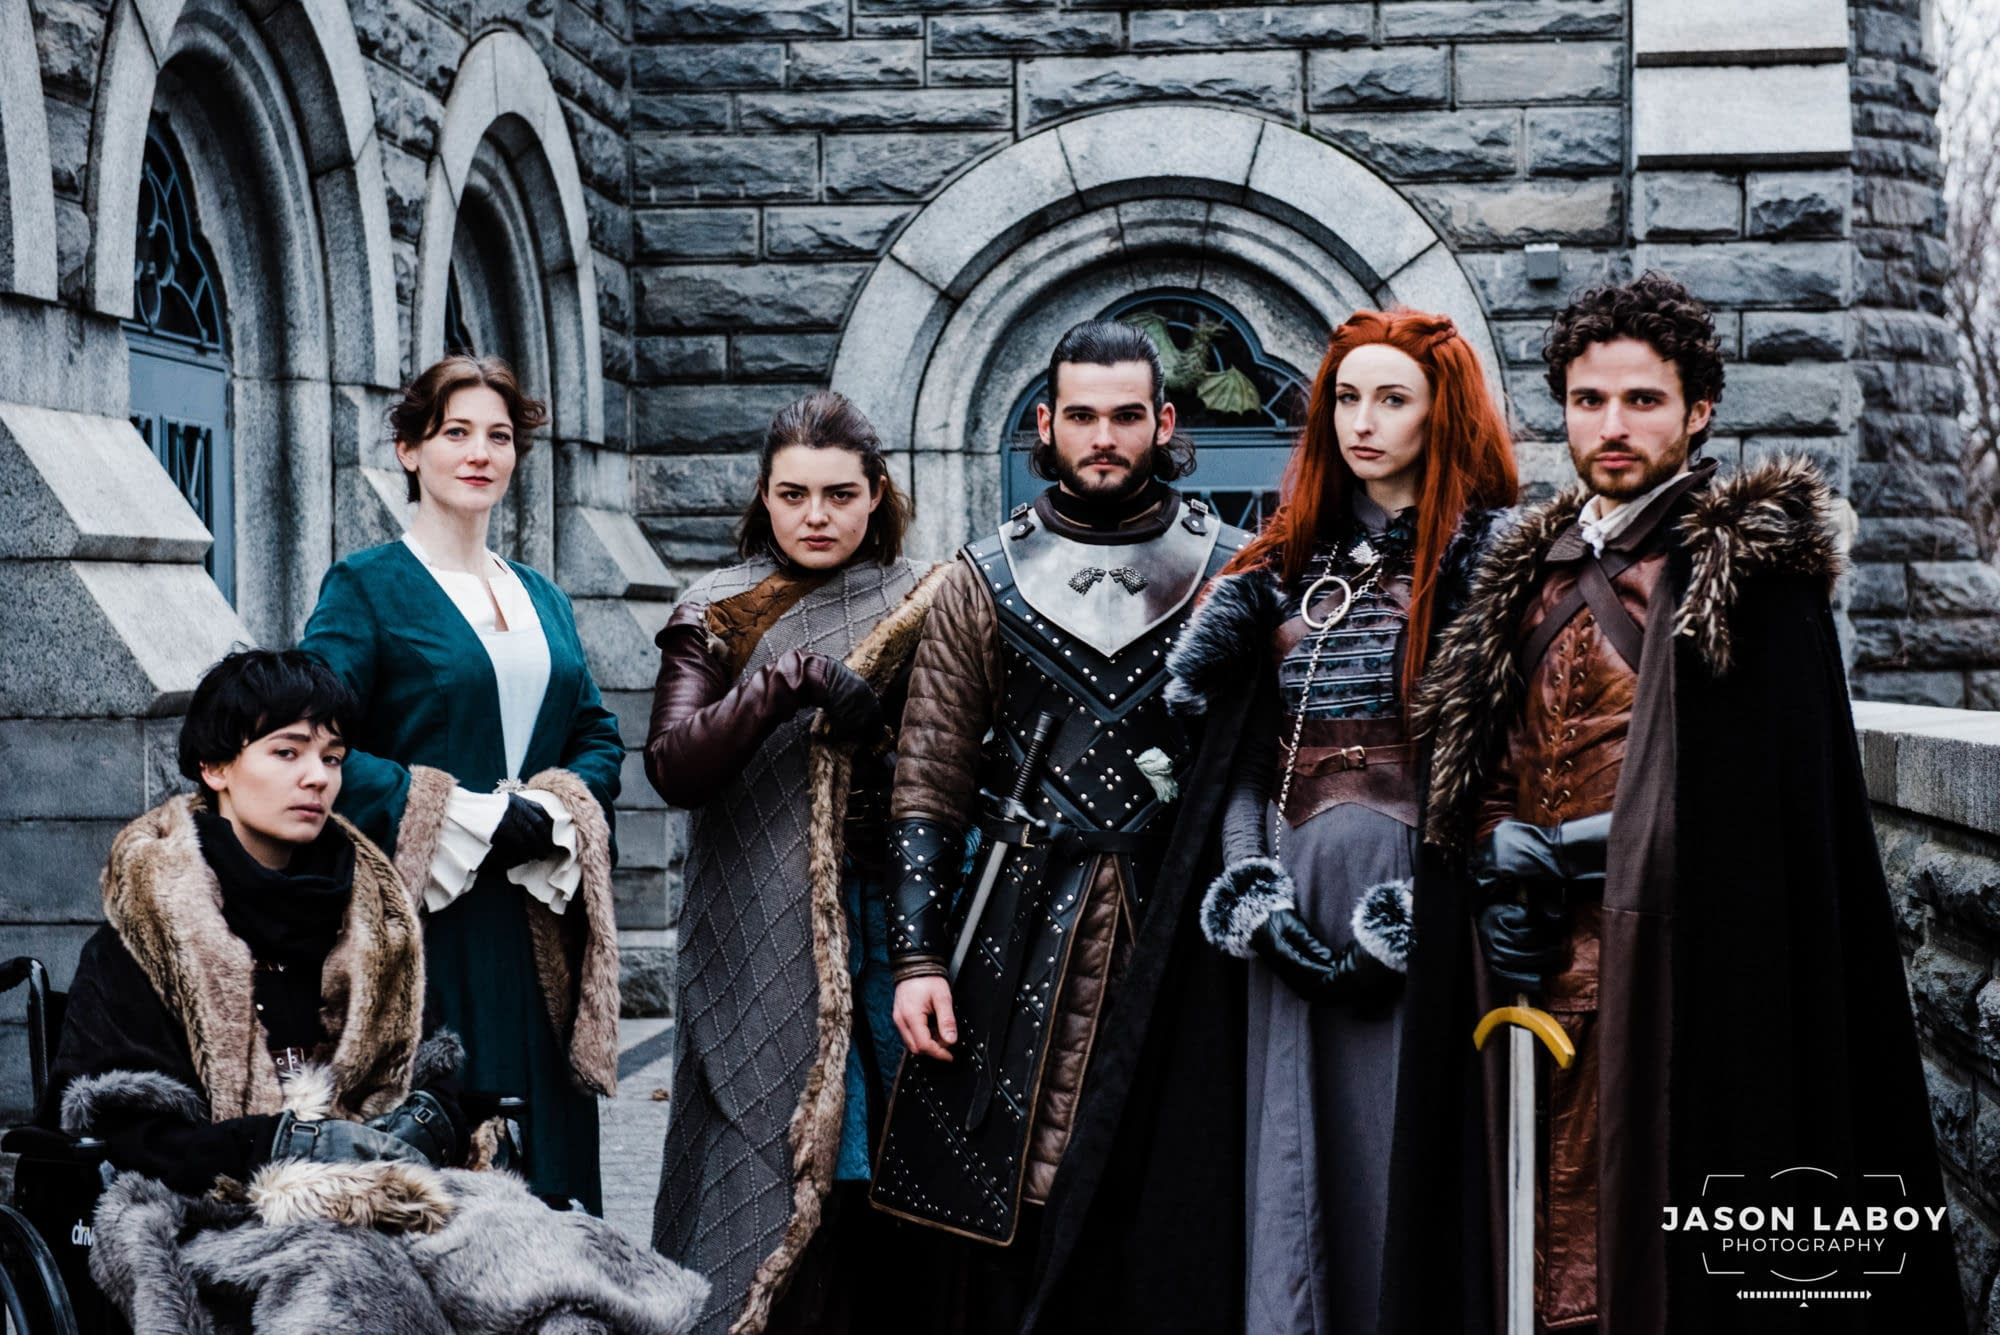 Check Out This Amazing NYC Game of Thrones Cosplay Shoot!